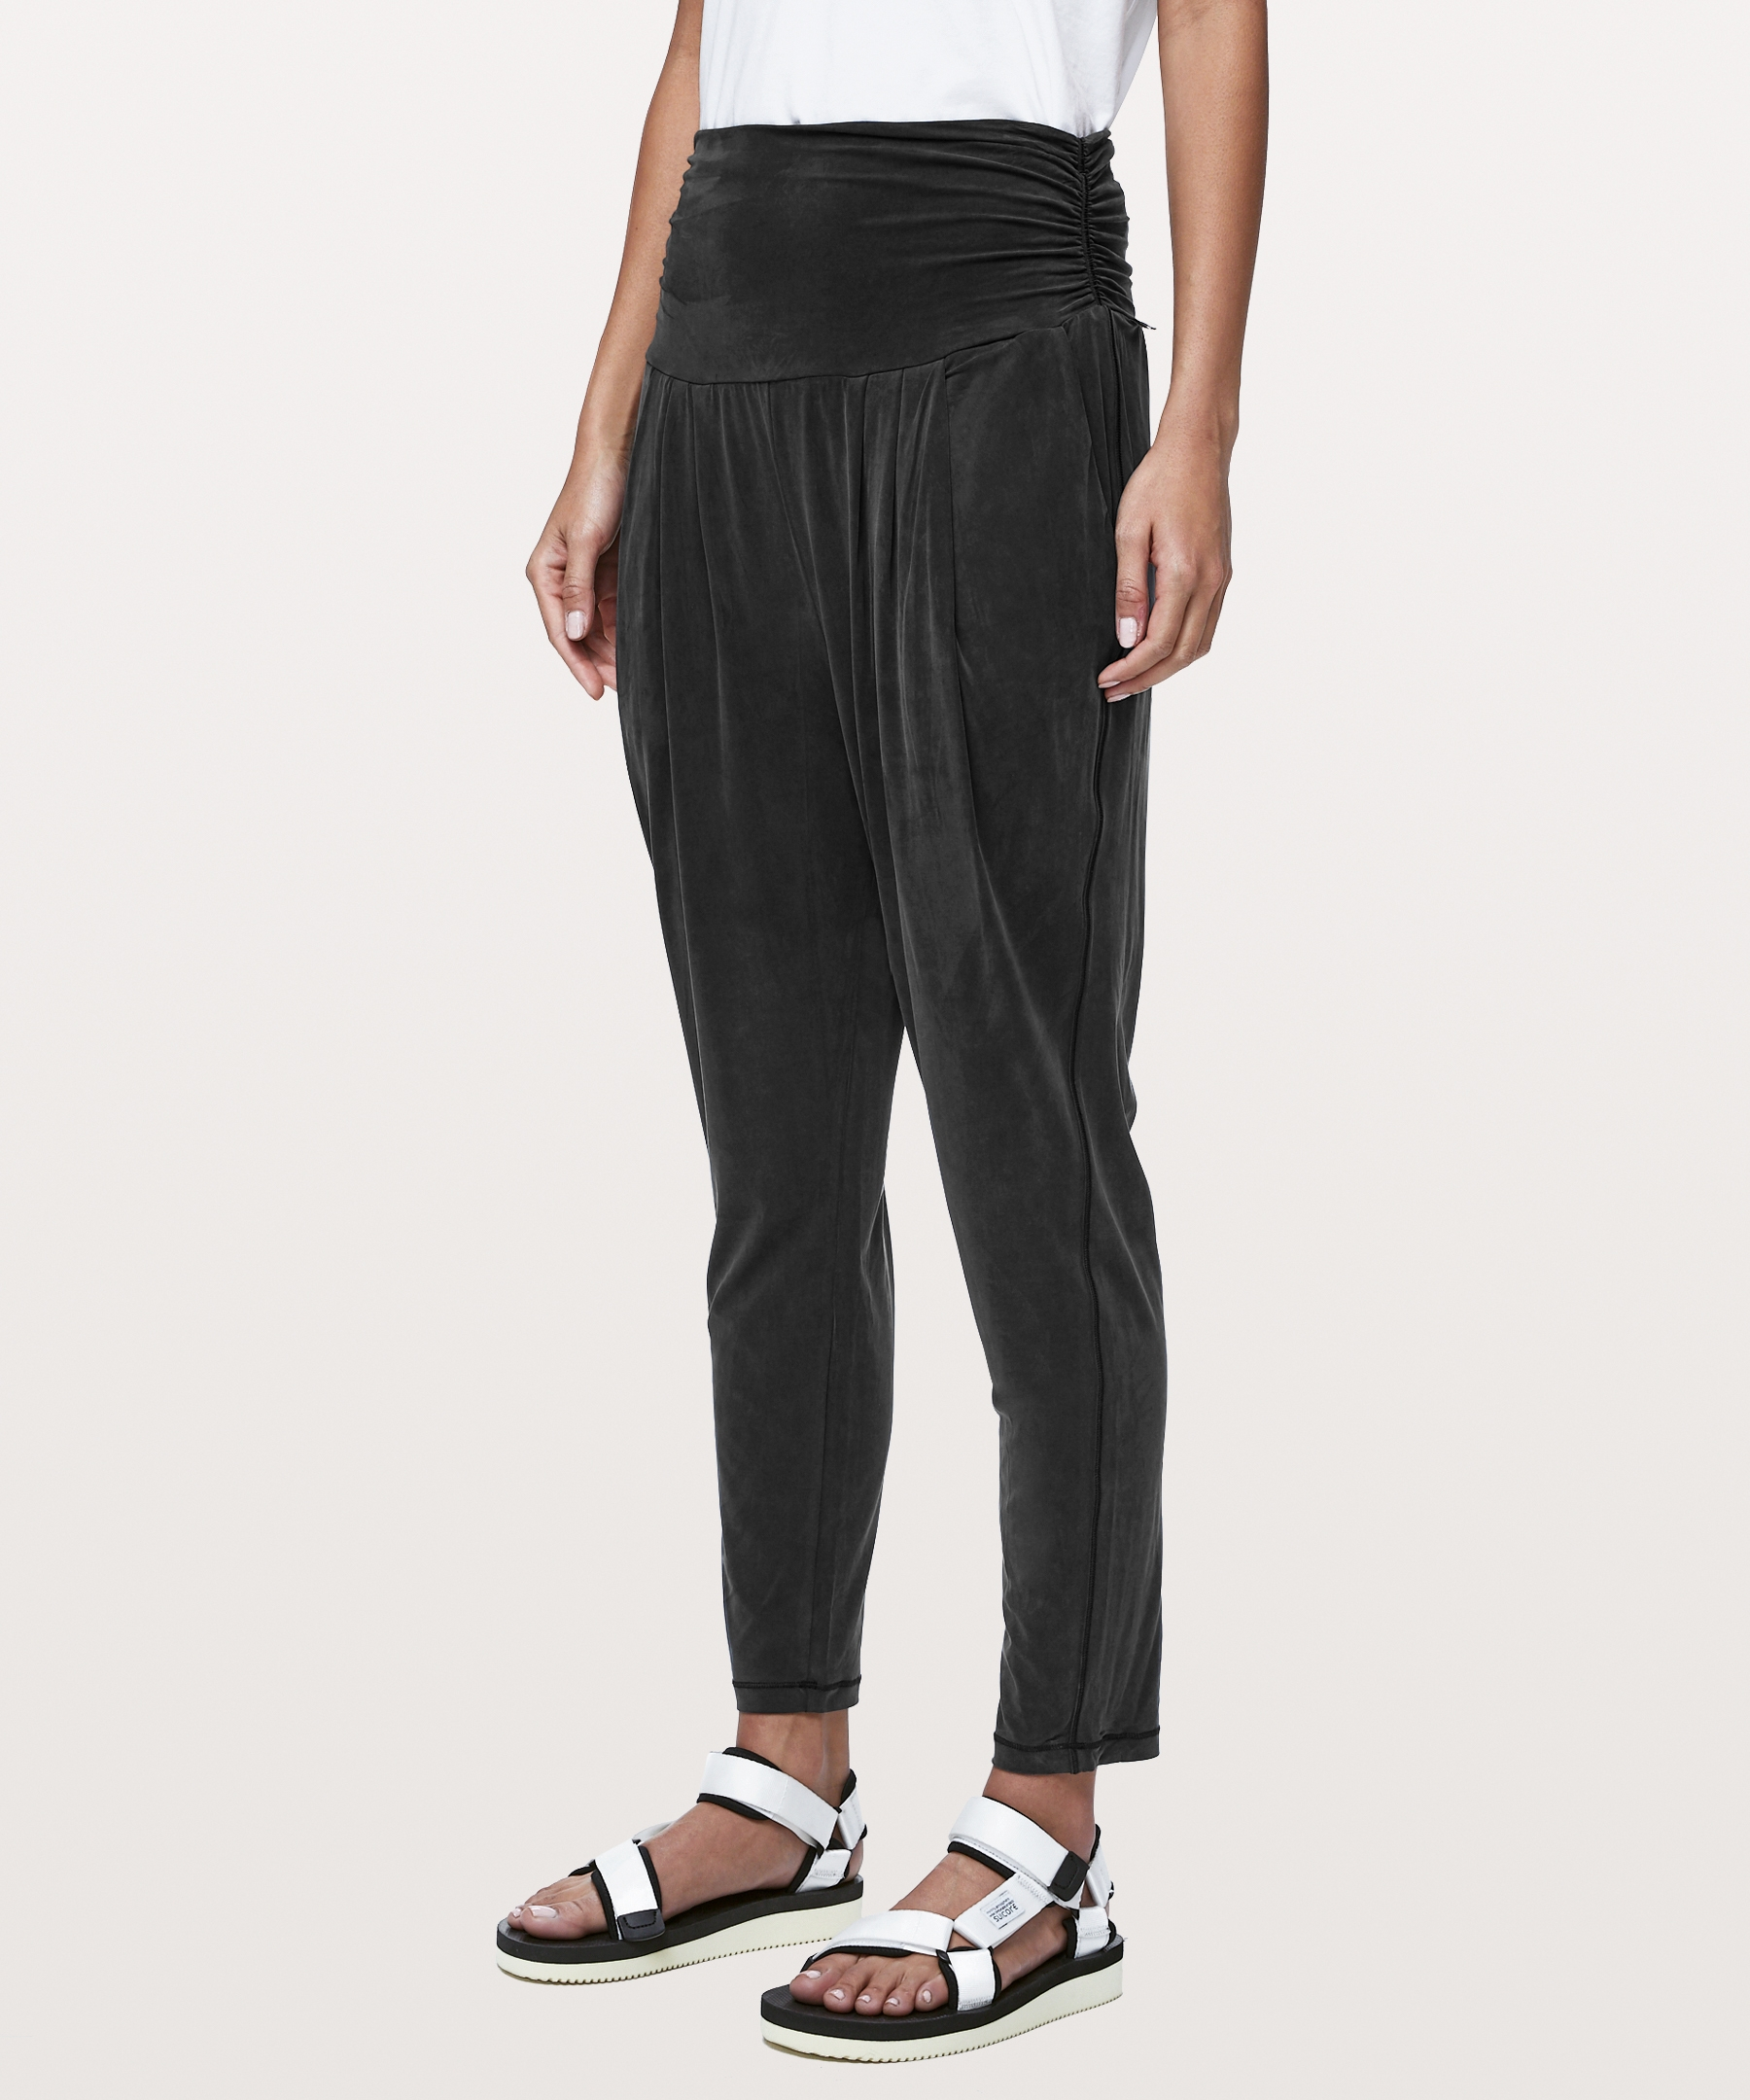 e8f7cba72 lululemon Women s Into Something Good Pant